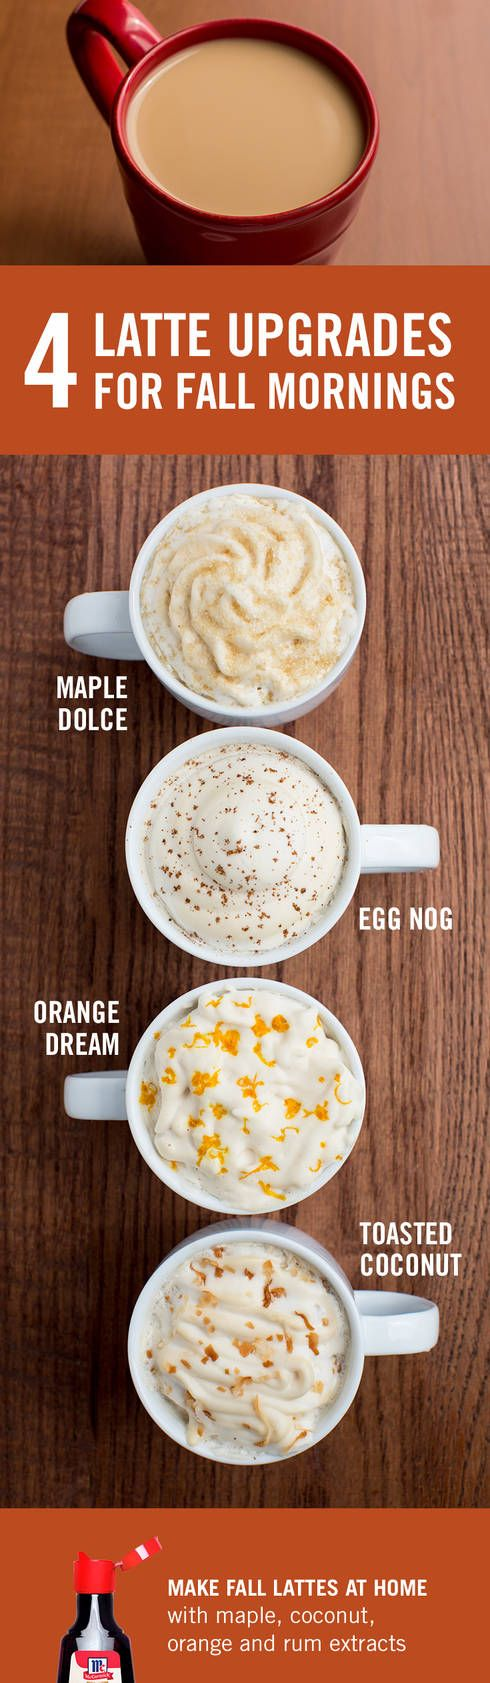 Forget sugary coffeehouse syrups. Make your own lattes with all the flavors of fall using McCormick maple, coconut, orange or rum extracts.